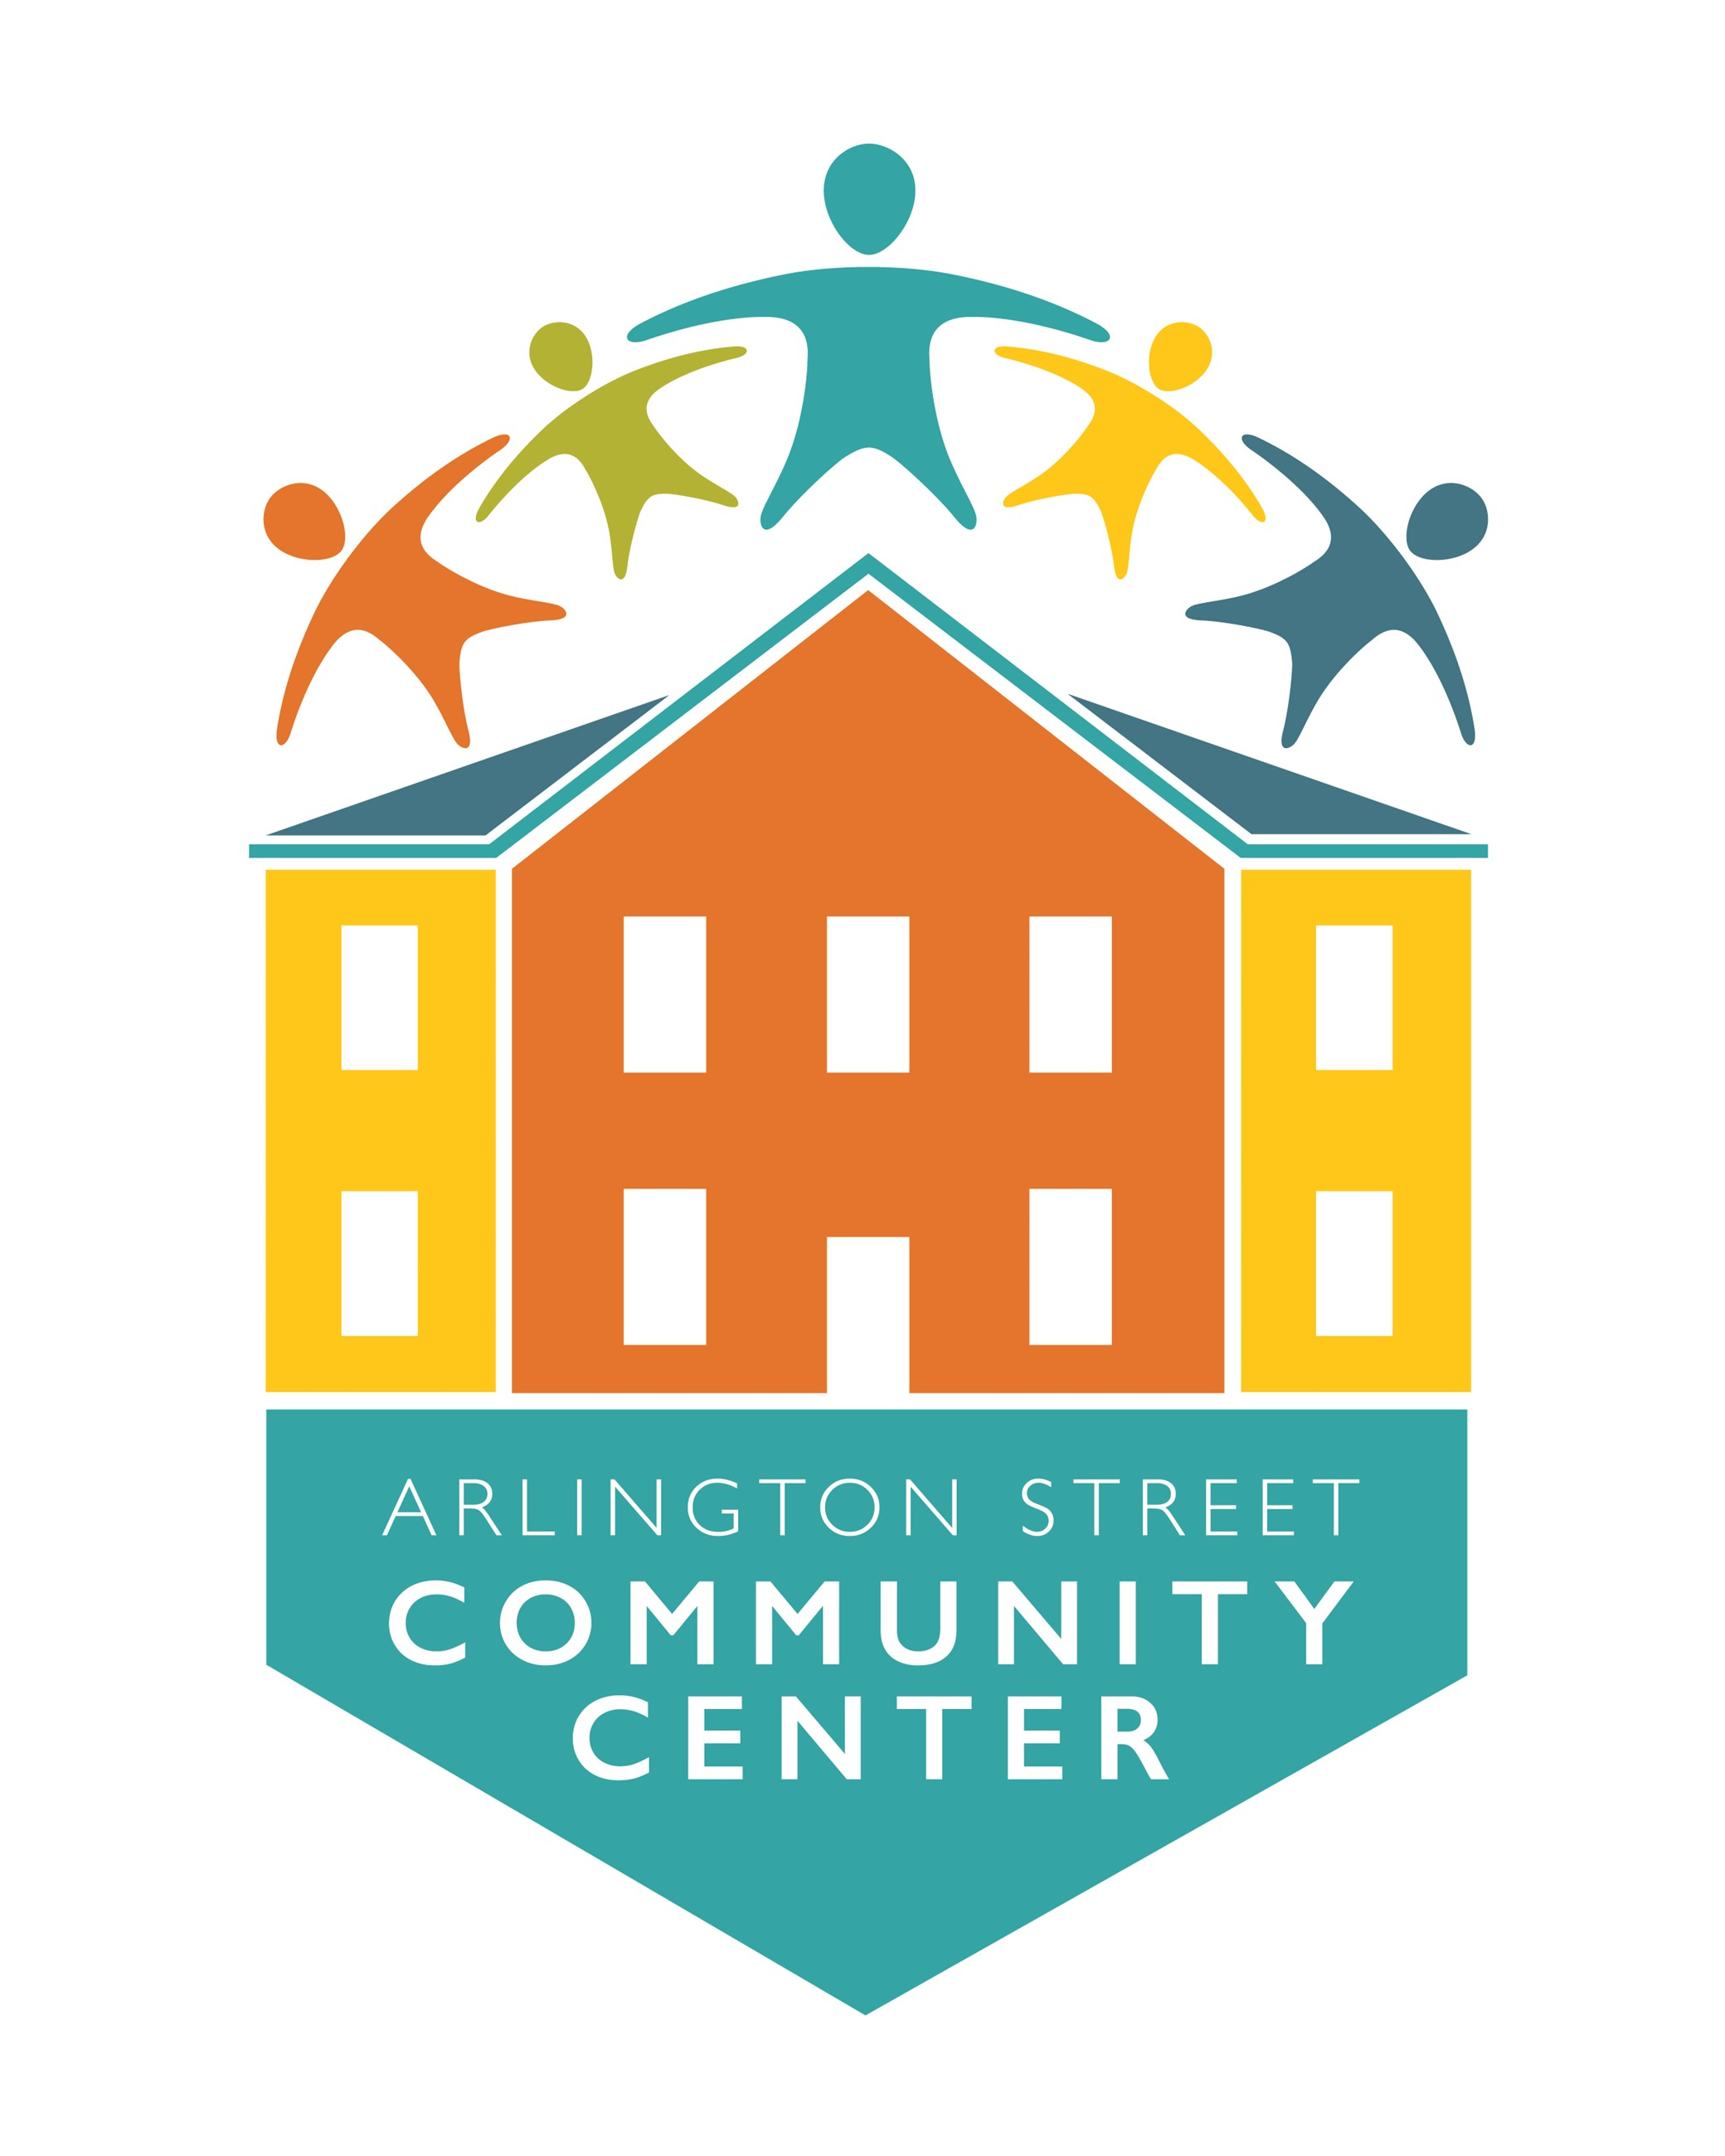 Arlington Street Community Center Logo